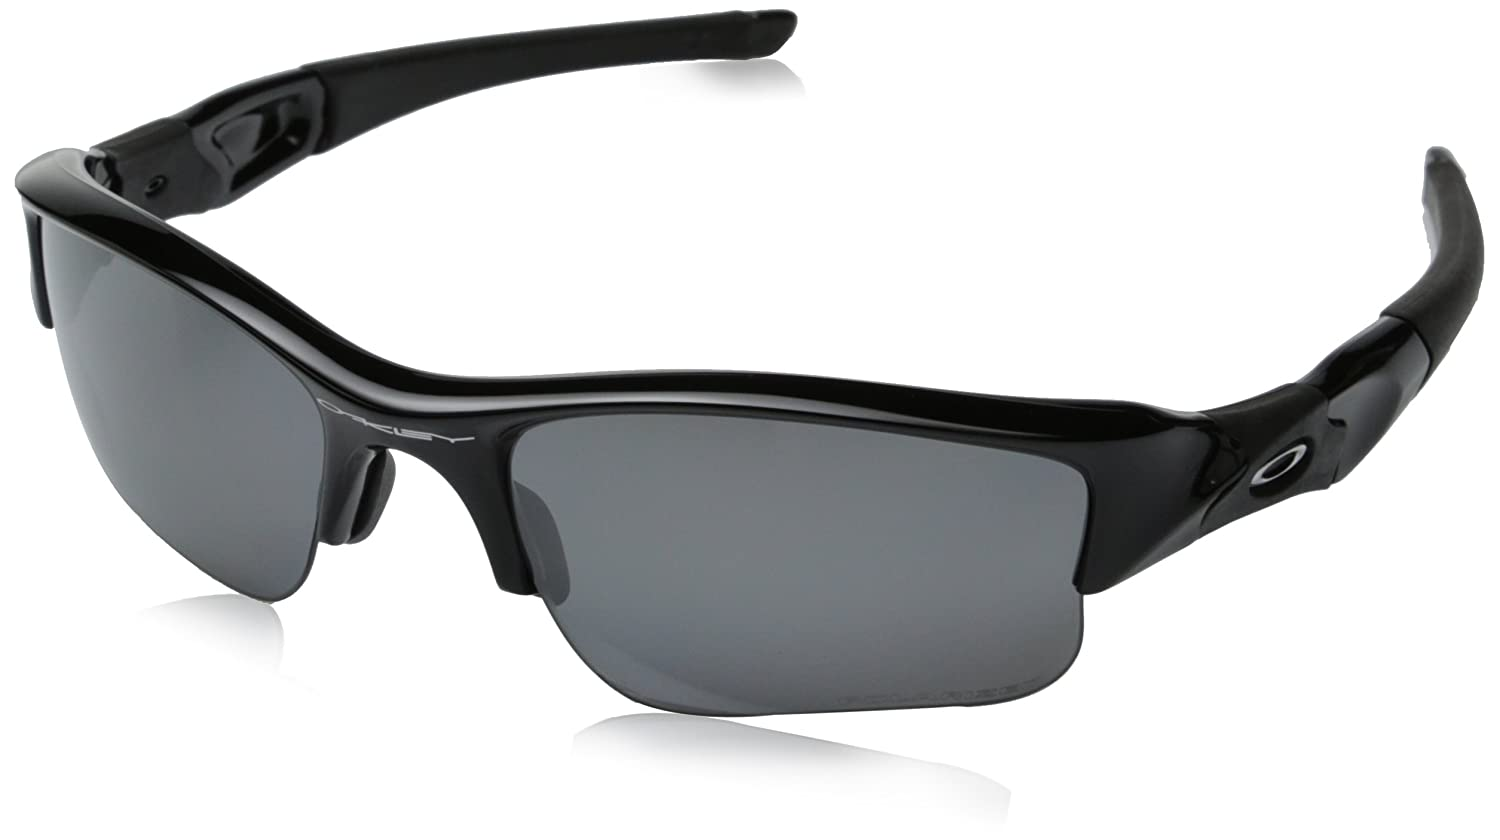 Amazon.com: Oakley Men's Flak Jacket XLJ 12-903 Sunglasses,Jet Black  Frame/Black Iridium,one size: Oakley: Shoes